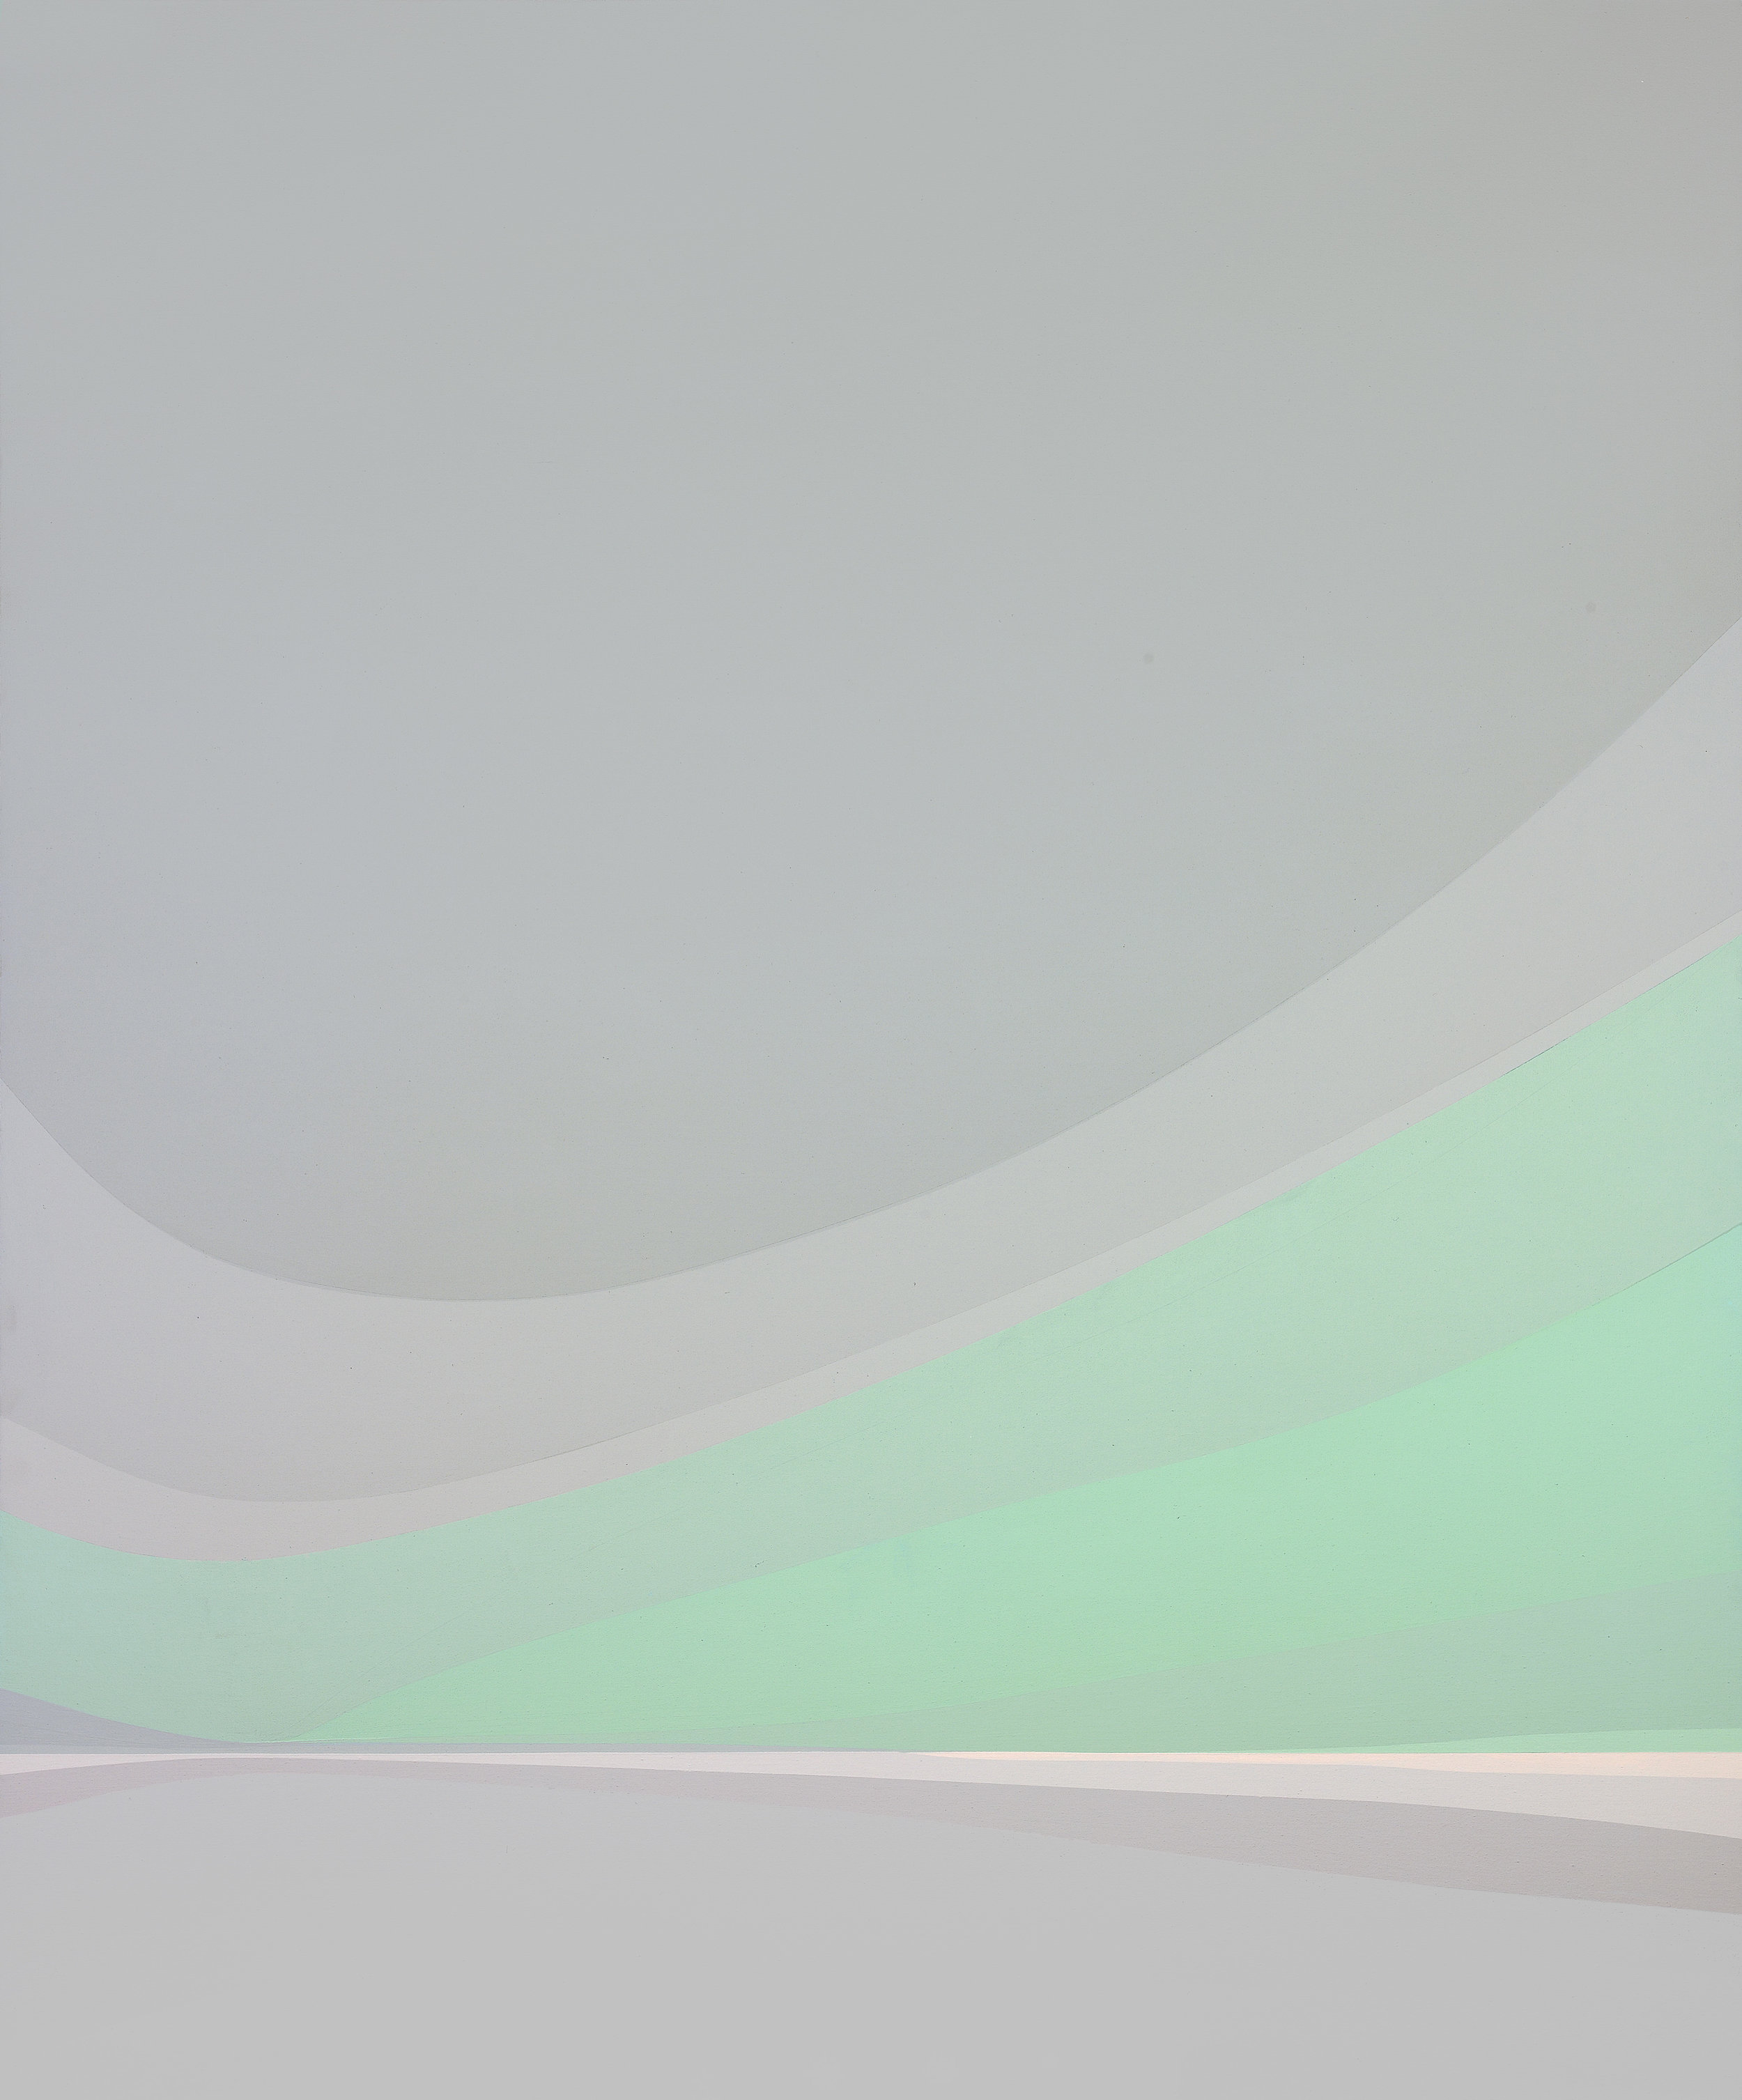 Great Cloud , 1982  acrylic on canvas 60 x 50 inches; 152.4 x 127 centimeters